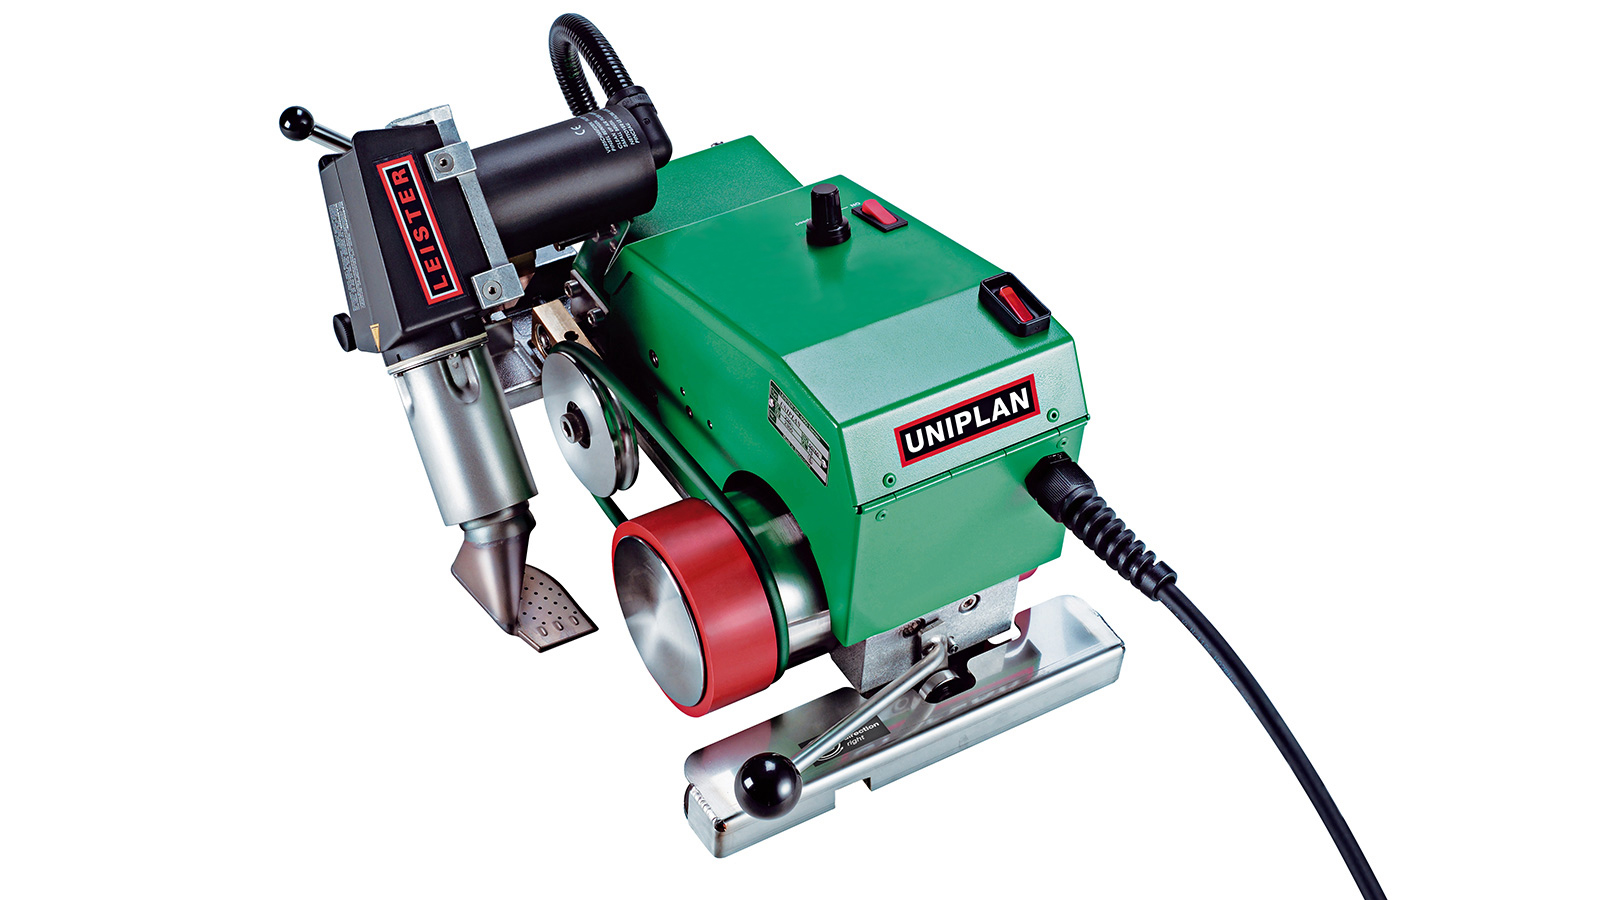 UNIPLAN S Hot-air welder